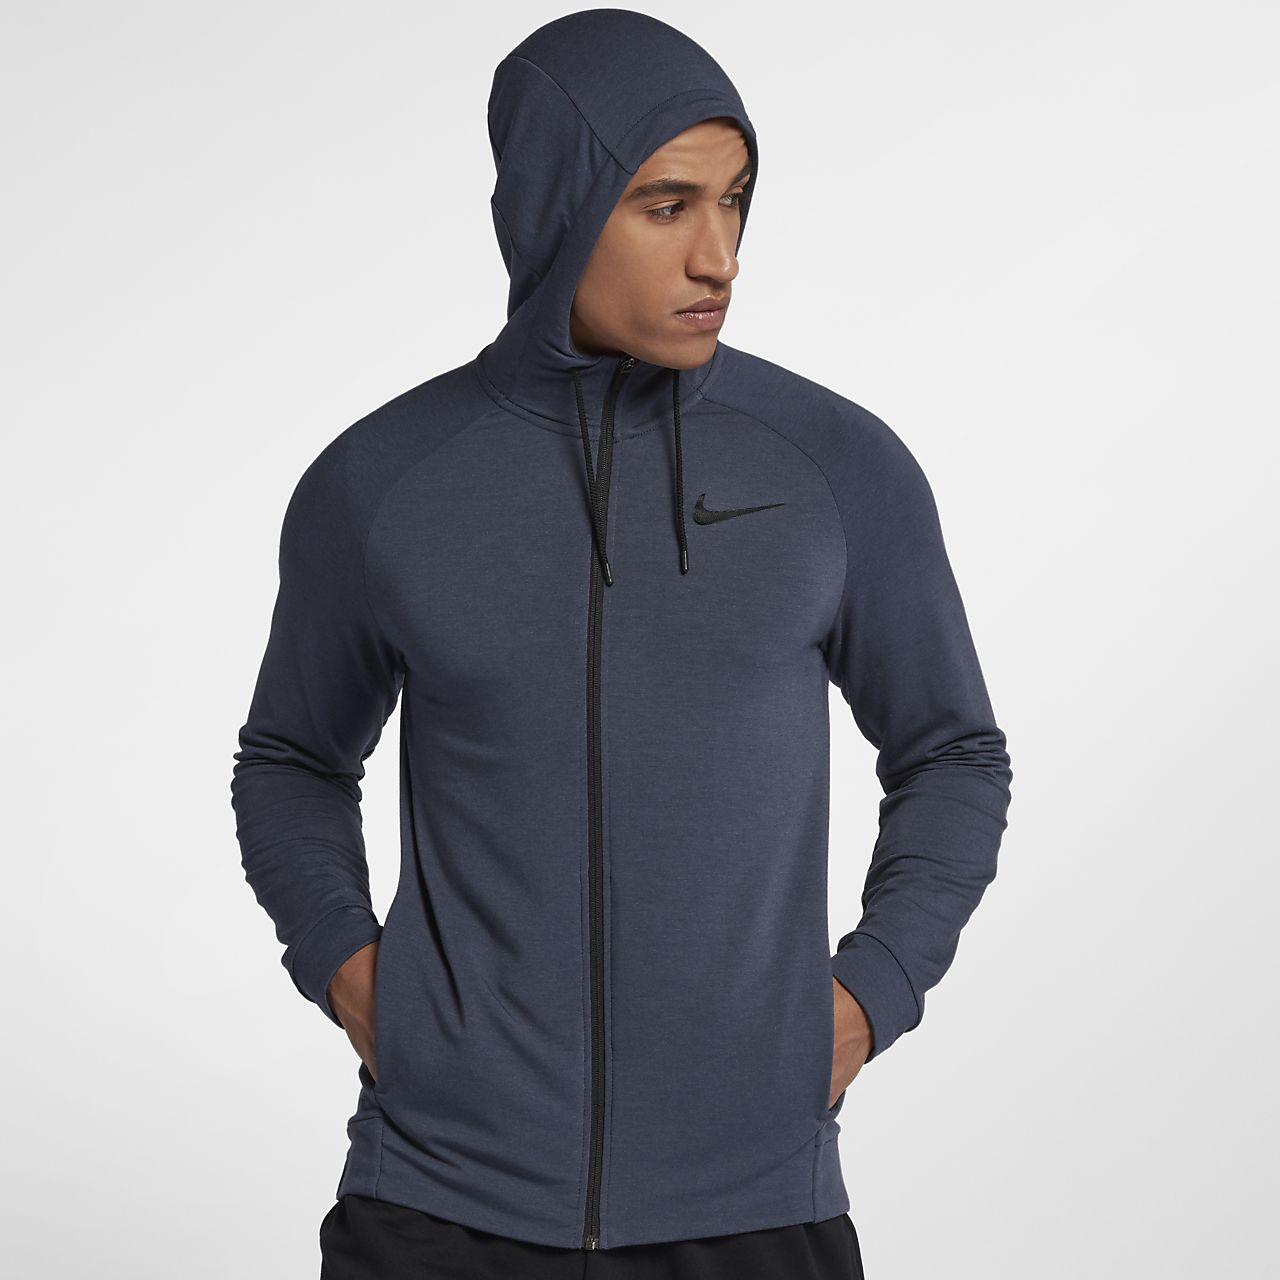 Men's Nike Dri-FIT Full-Zip - Training Hoodie IQ395164n